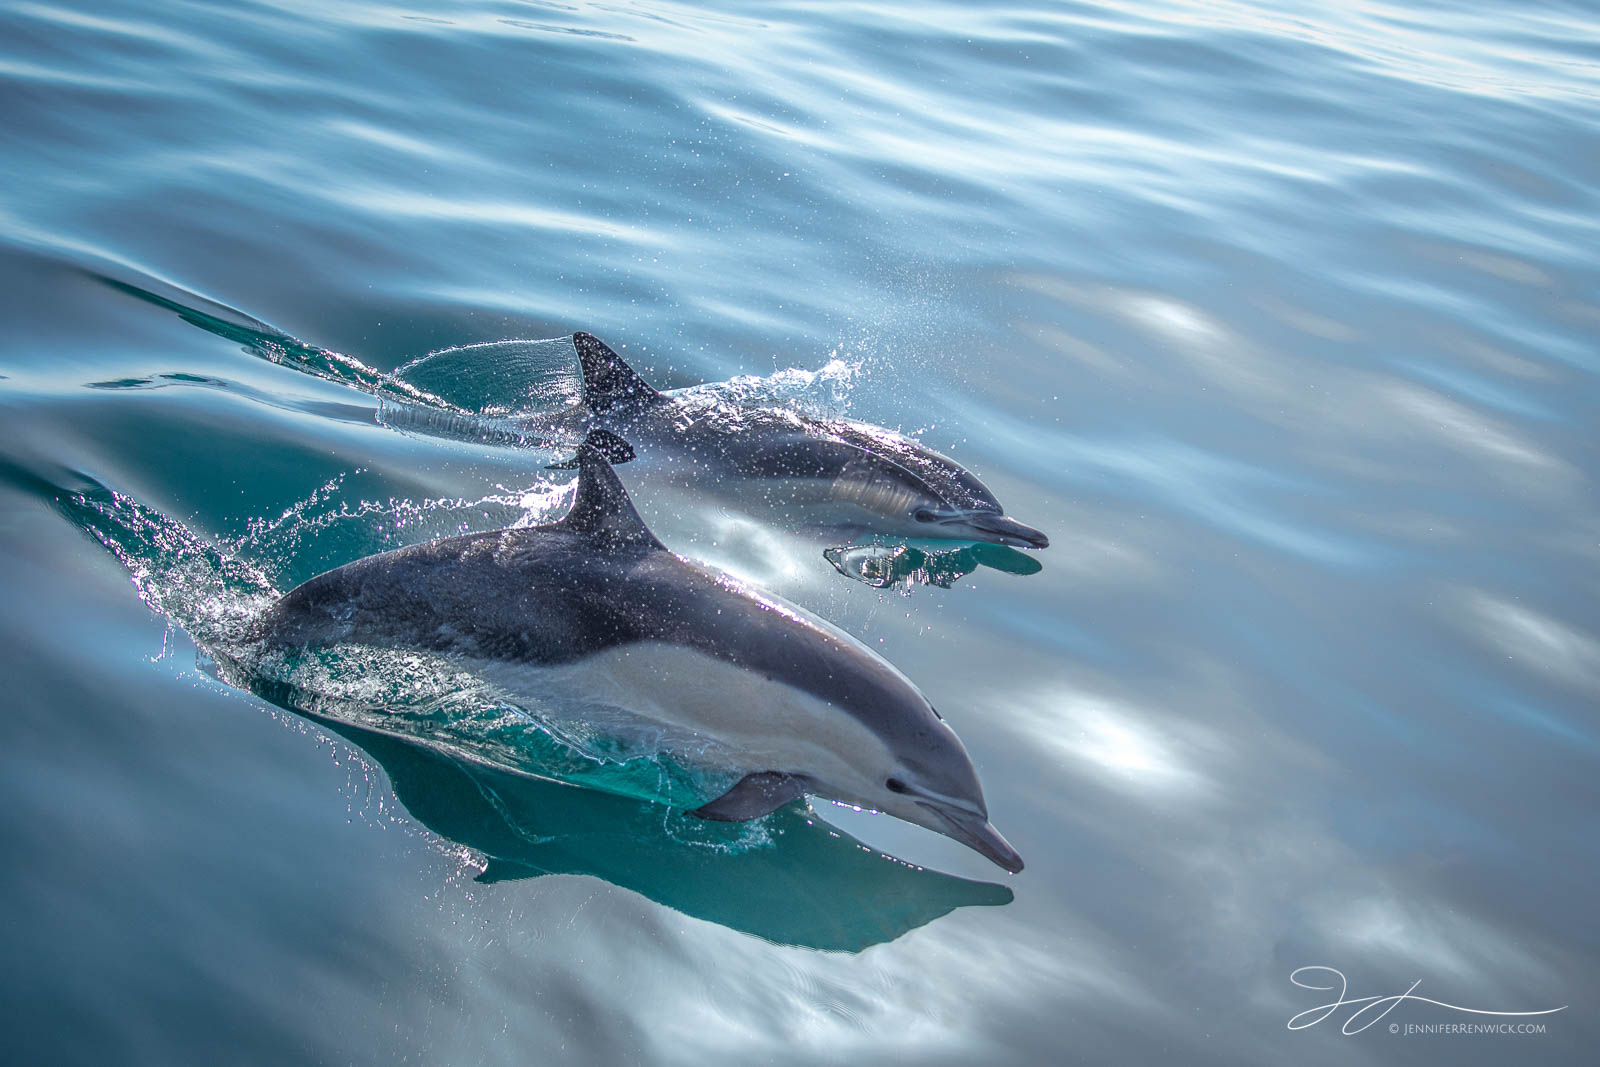 Dana point, La Jolla, Laguna beach, Pacific ocean, California, common dolphins, dolphin photography, wildlife, wild dolphins, photo